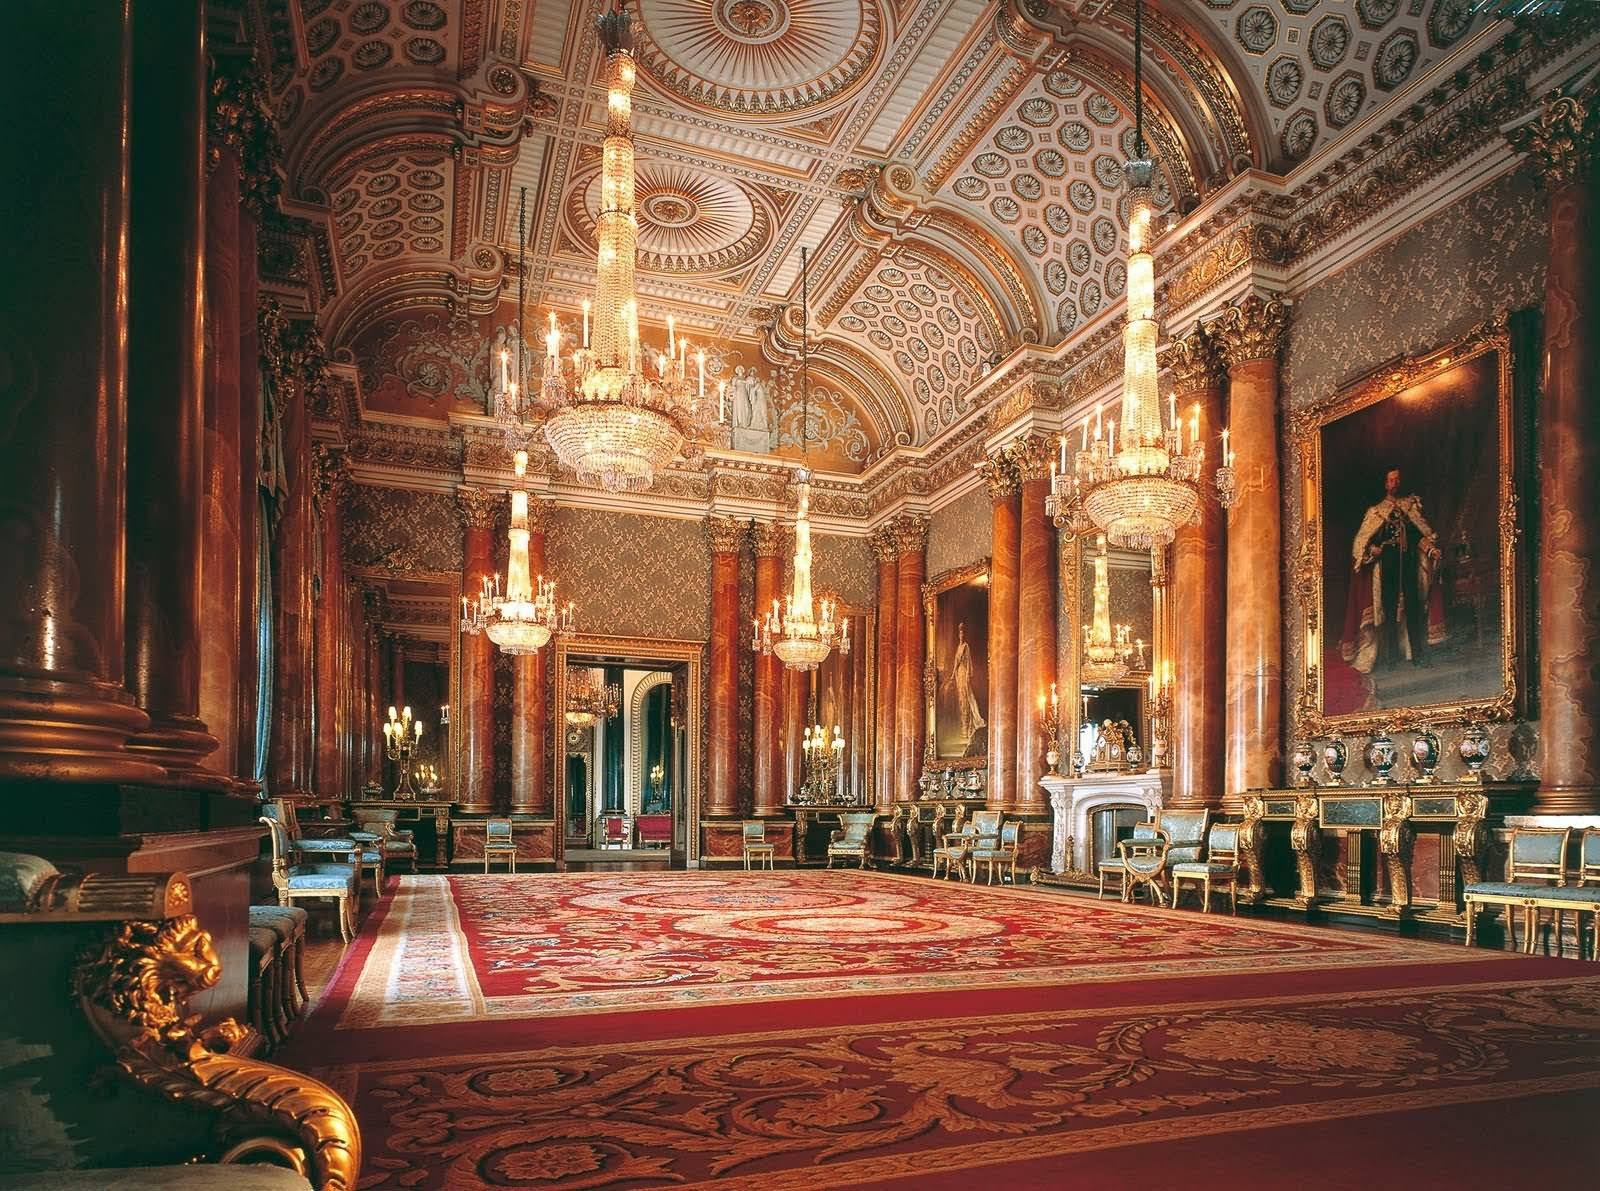 Inside Buckingham Palace - THE MOST BEAUTIFUL INTERIOR PICTURES OF BUCKINGHAM PALACE LONDON